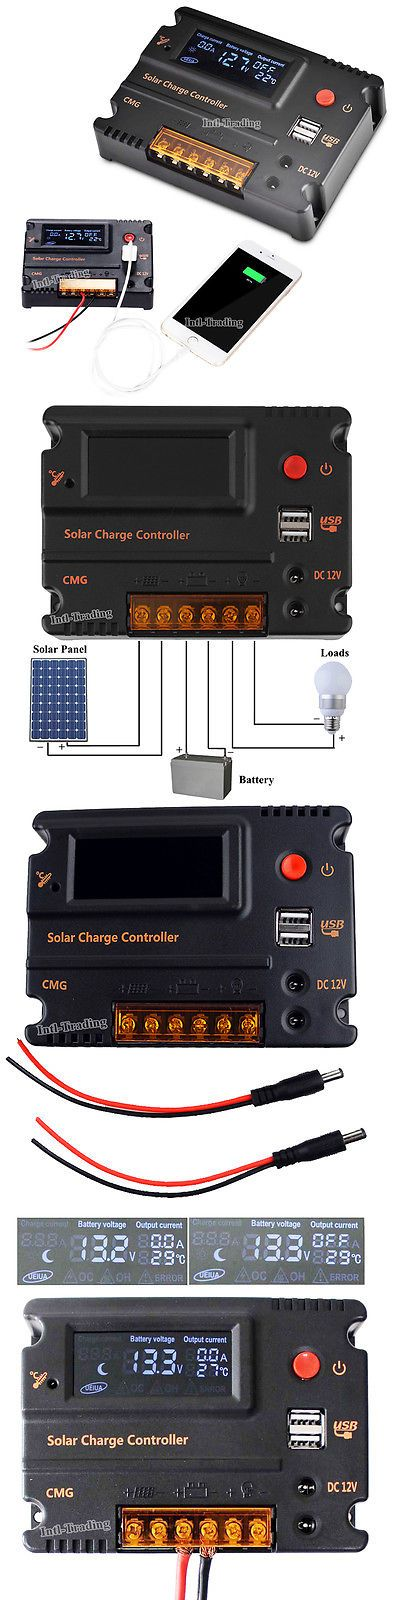 Chargers And Inverters 41980 Cmg 20a Lcd Solar Panel Charge Controller Battery Regulator 12v 24v Auto Switch Buy It Now Only 24 29 Solar Panels Lcd Solar